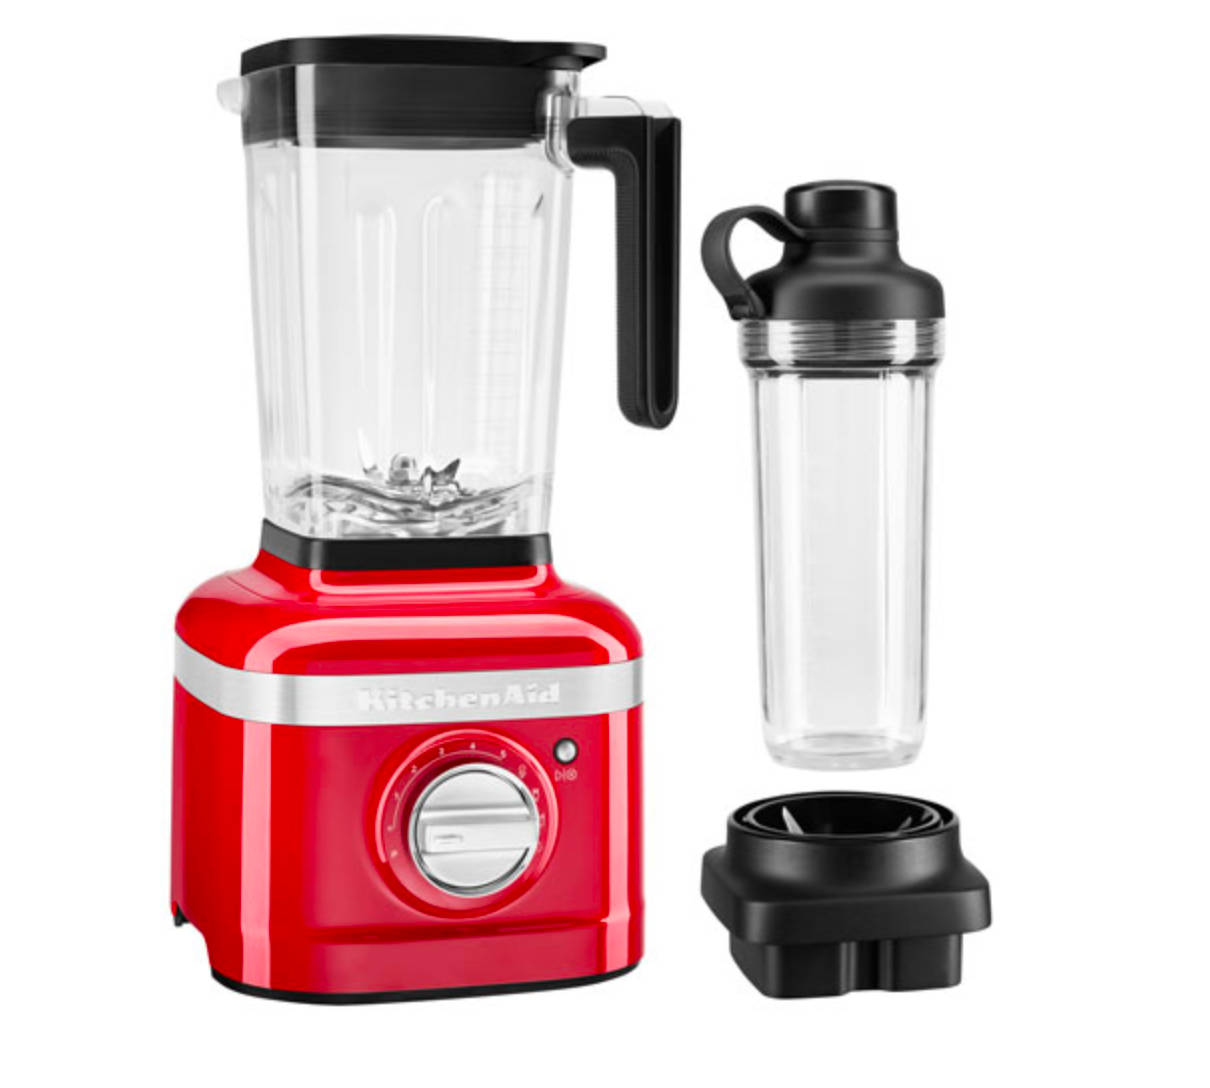 KitchenAid blender with personal cup